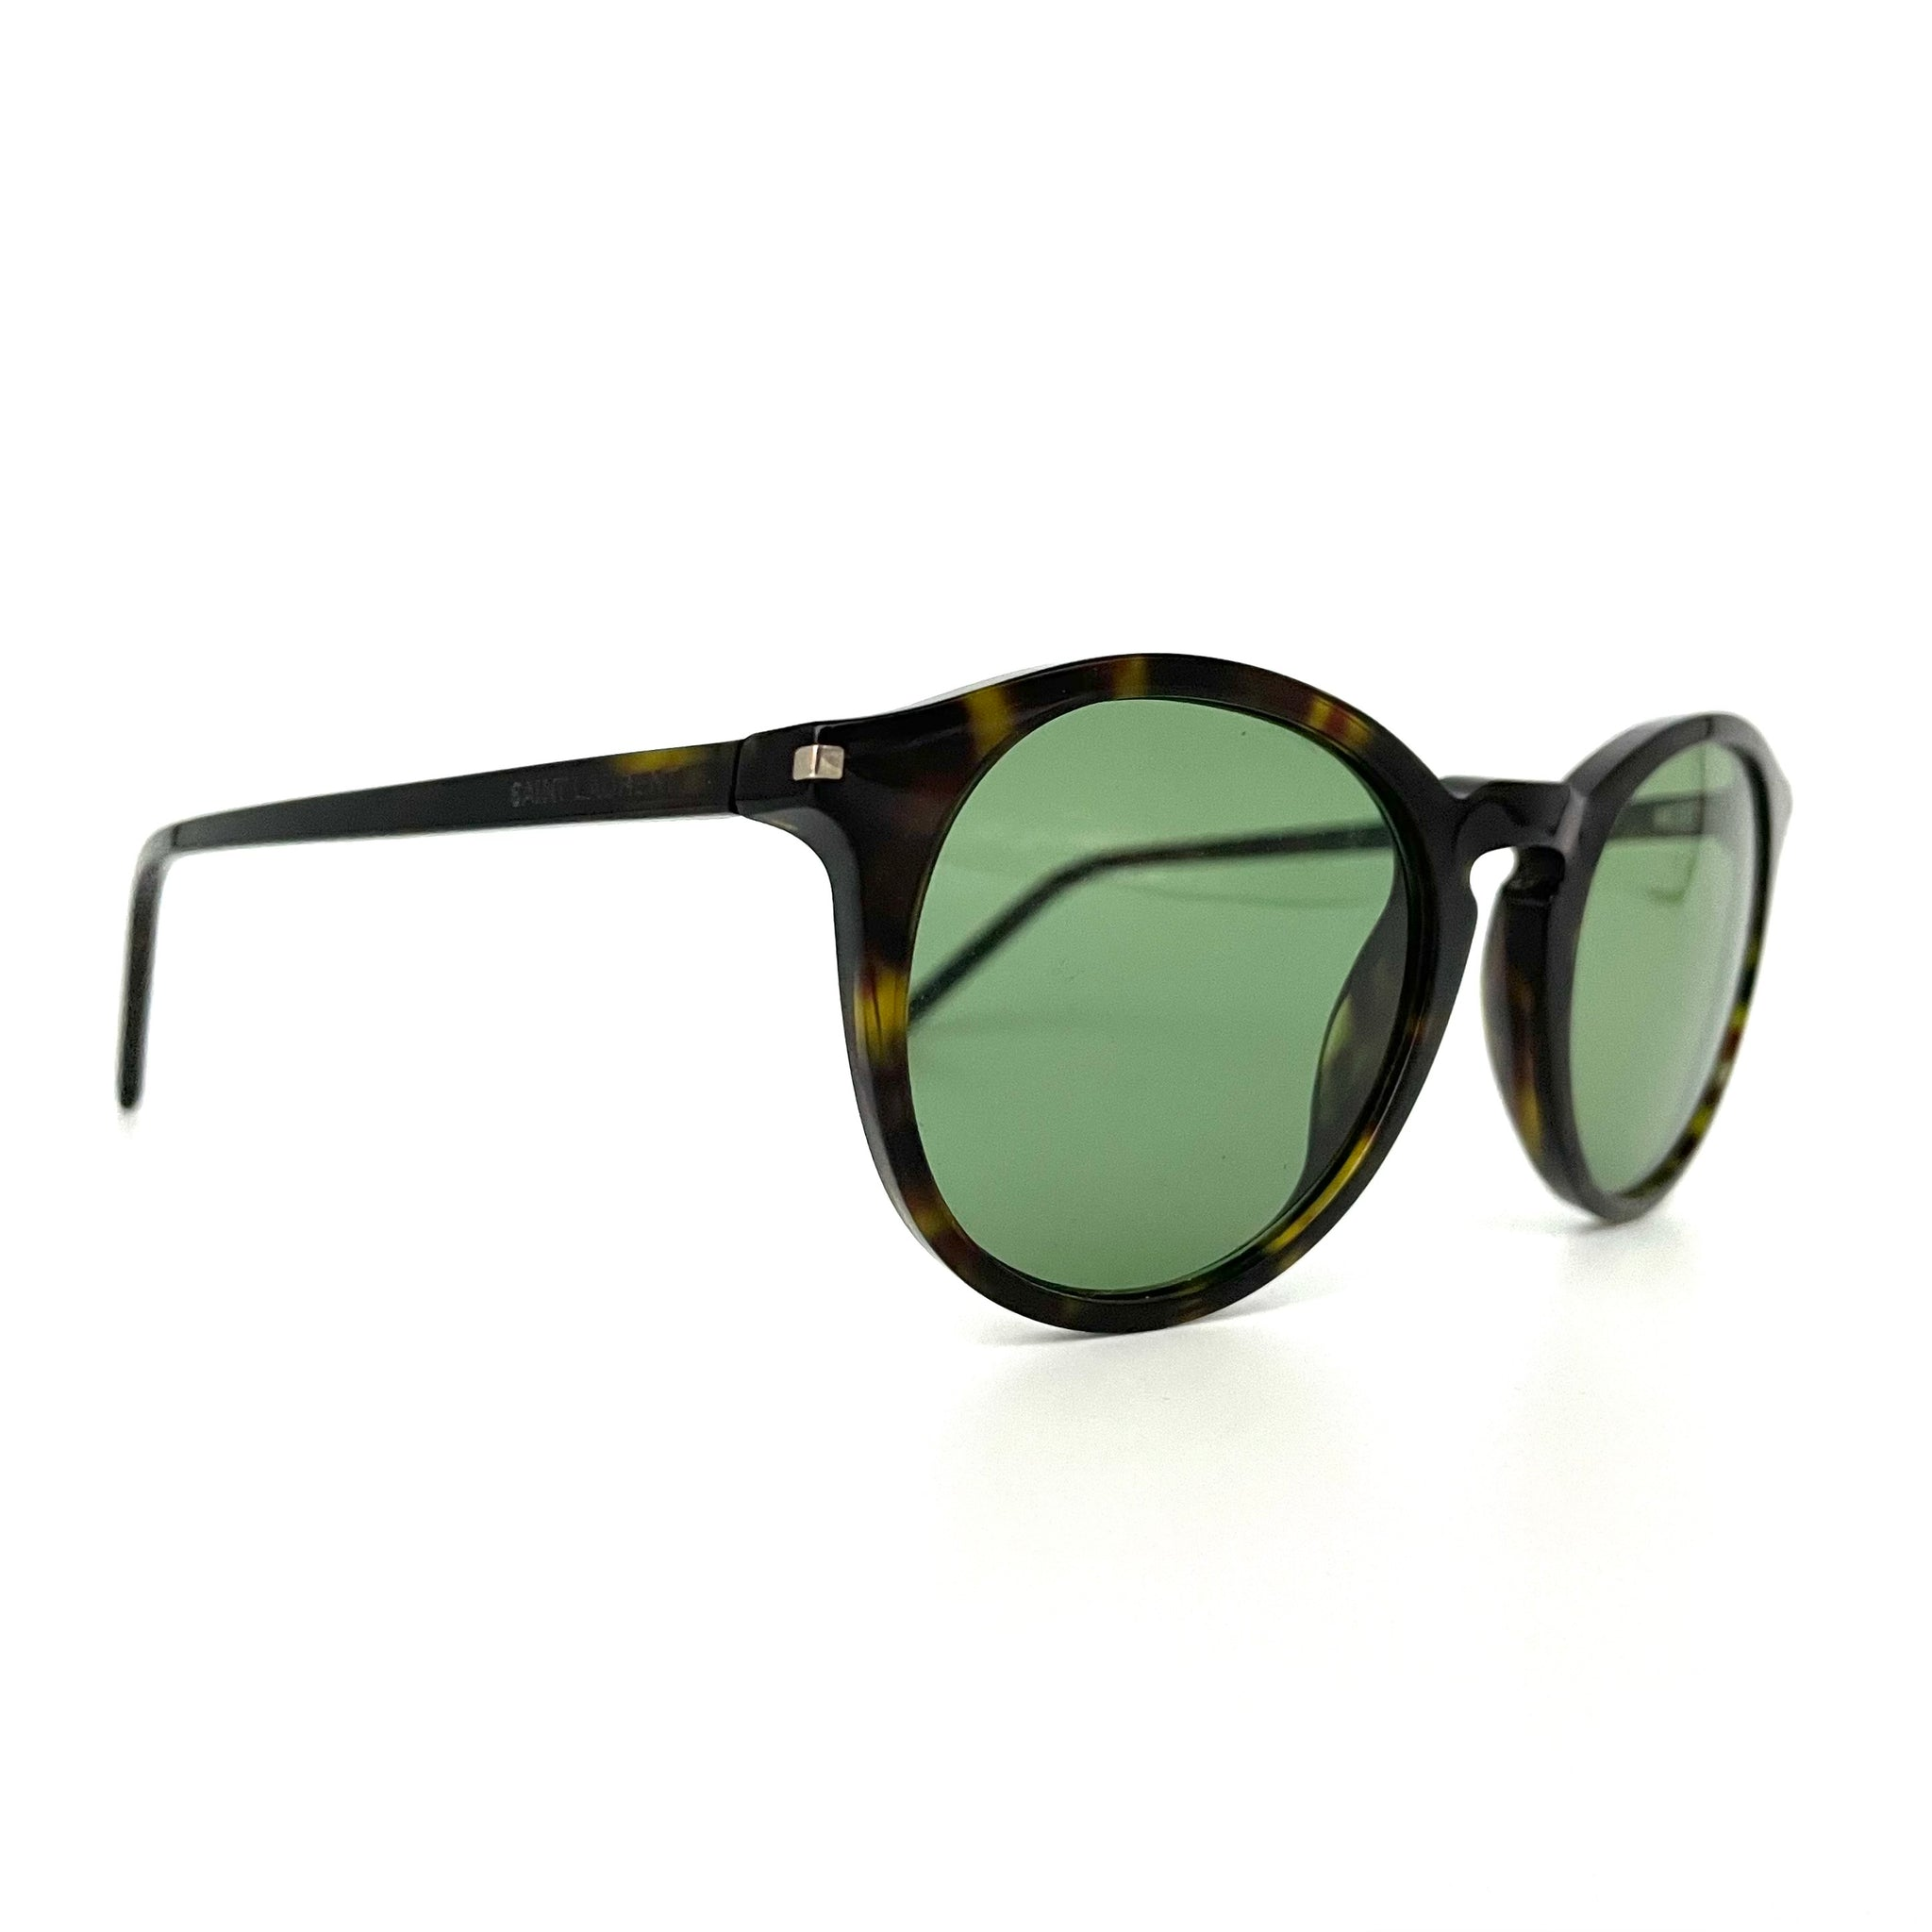 Saint Laurent occhiali da sole SL53 slim havana